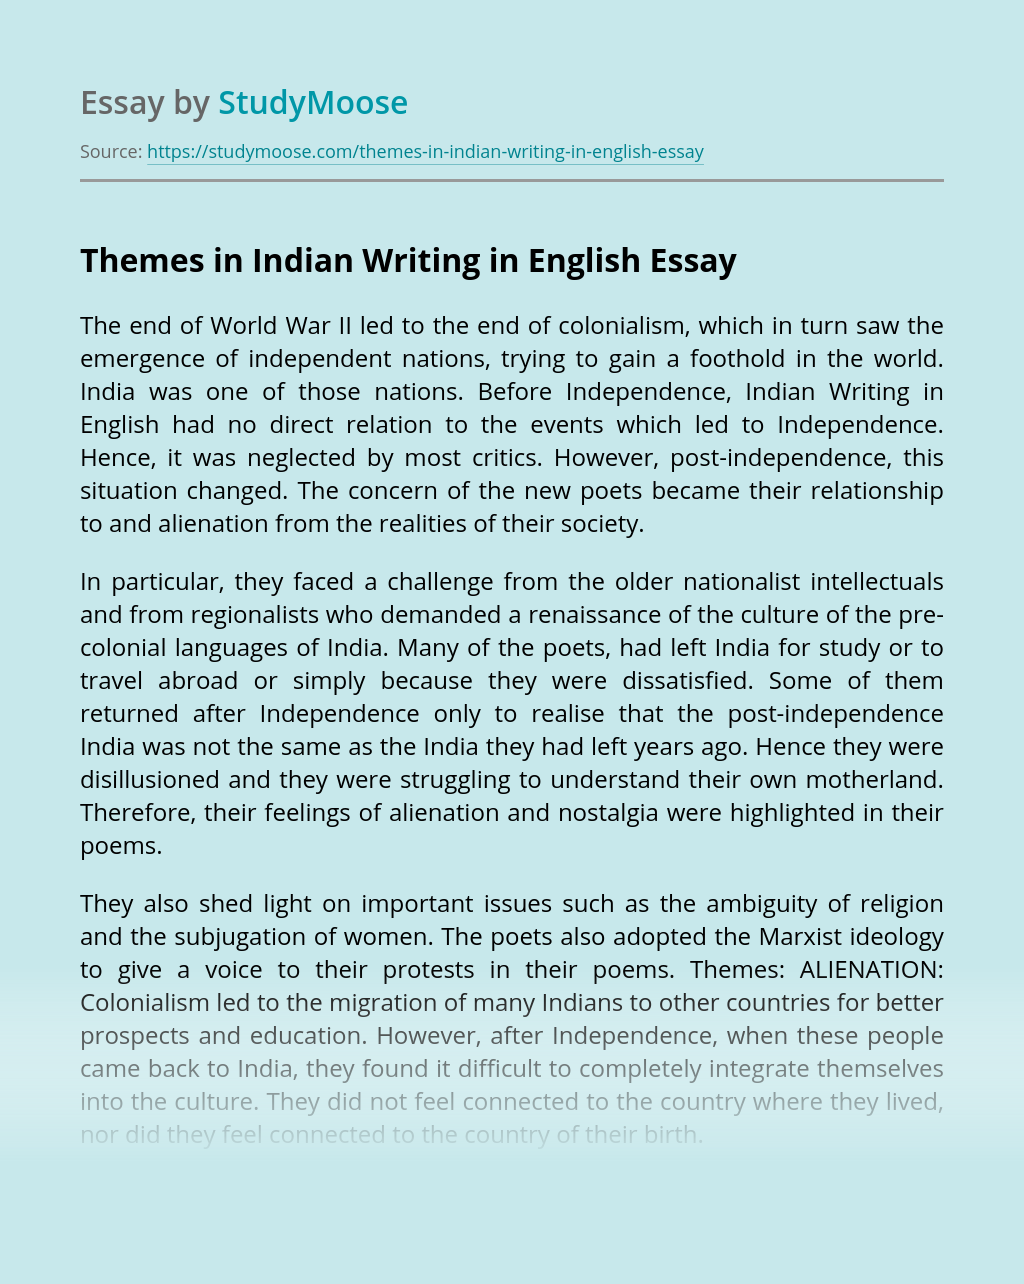 Themes in Indian Writing in English